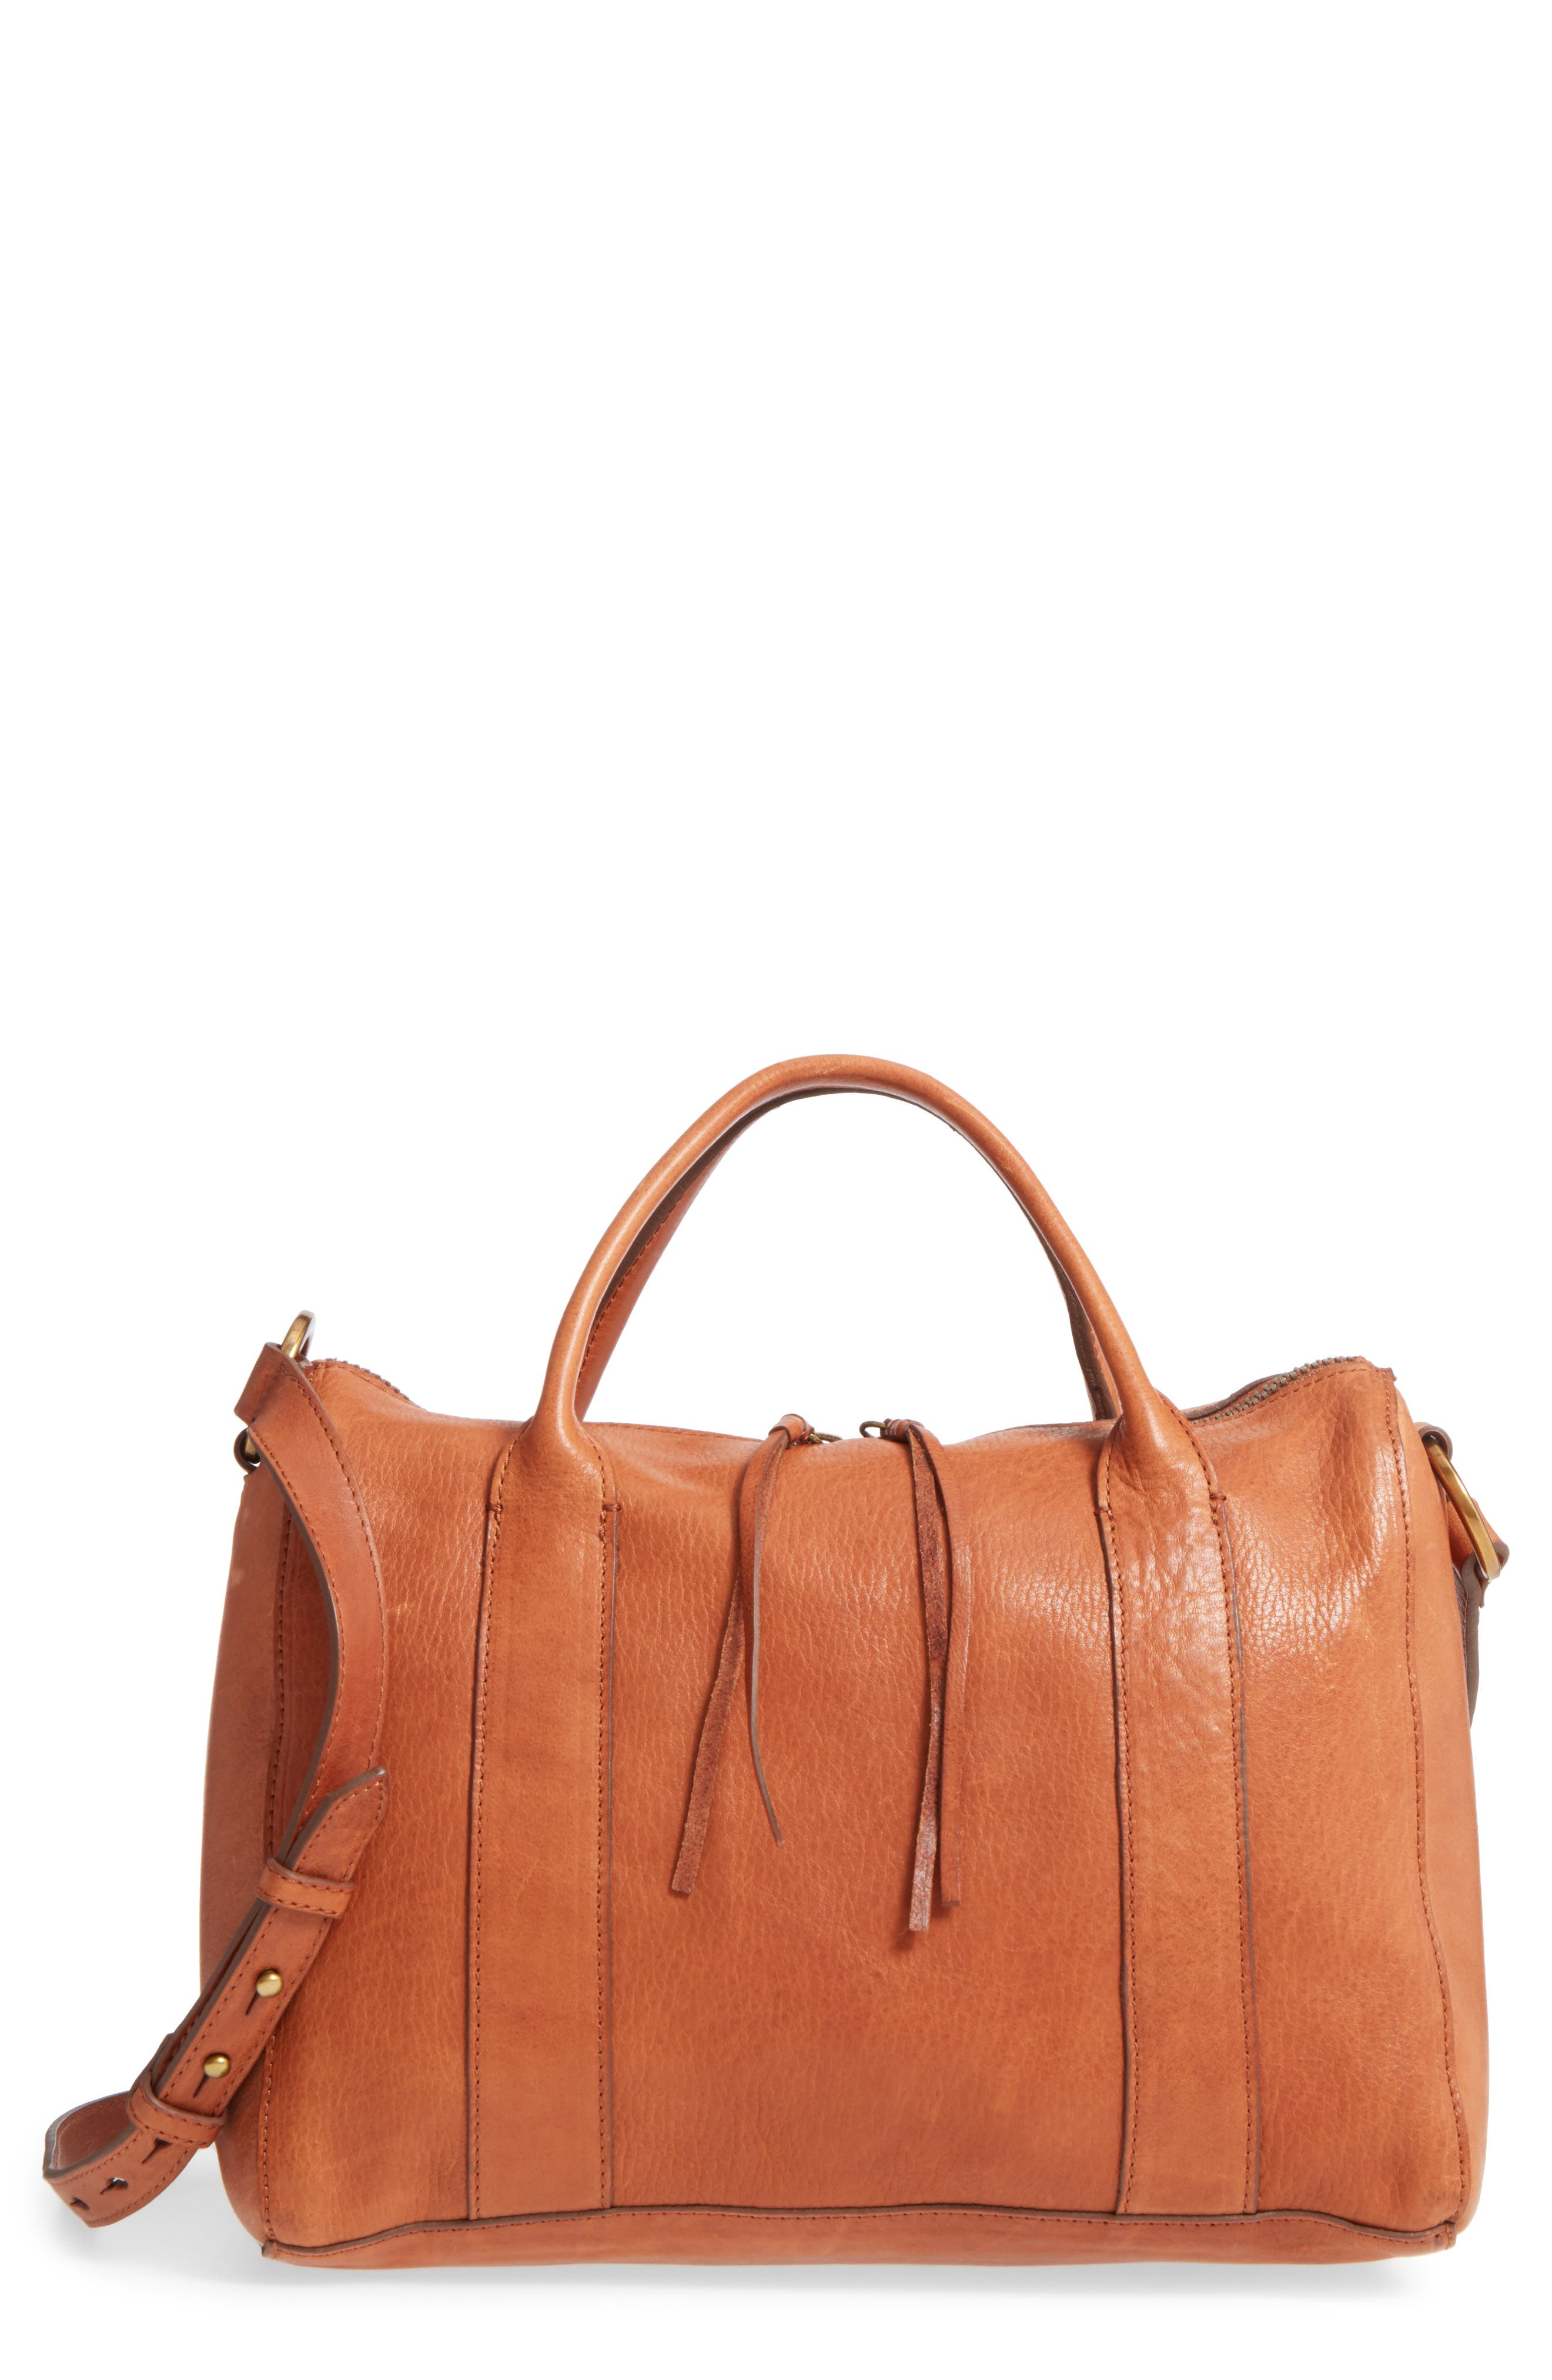 ec2ce4b62a78 Madewell O-Ring Leather Satchel - Brown In English Saddle ...